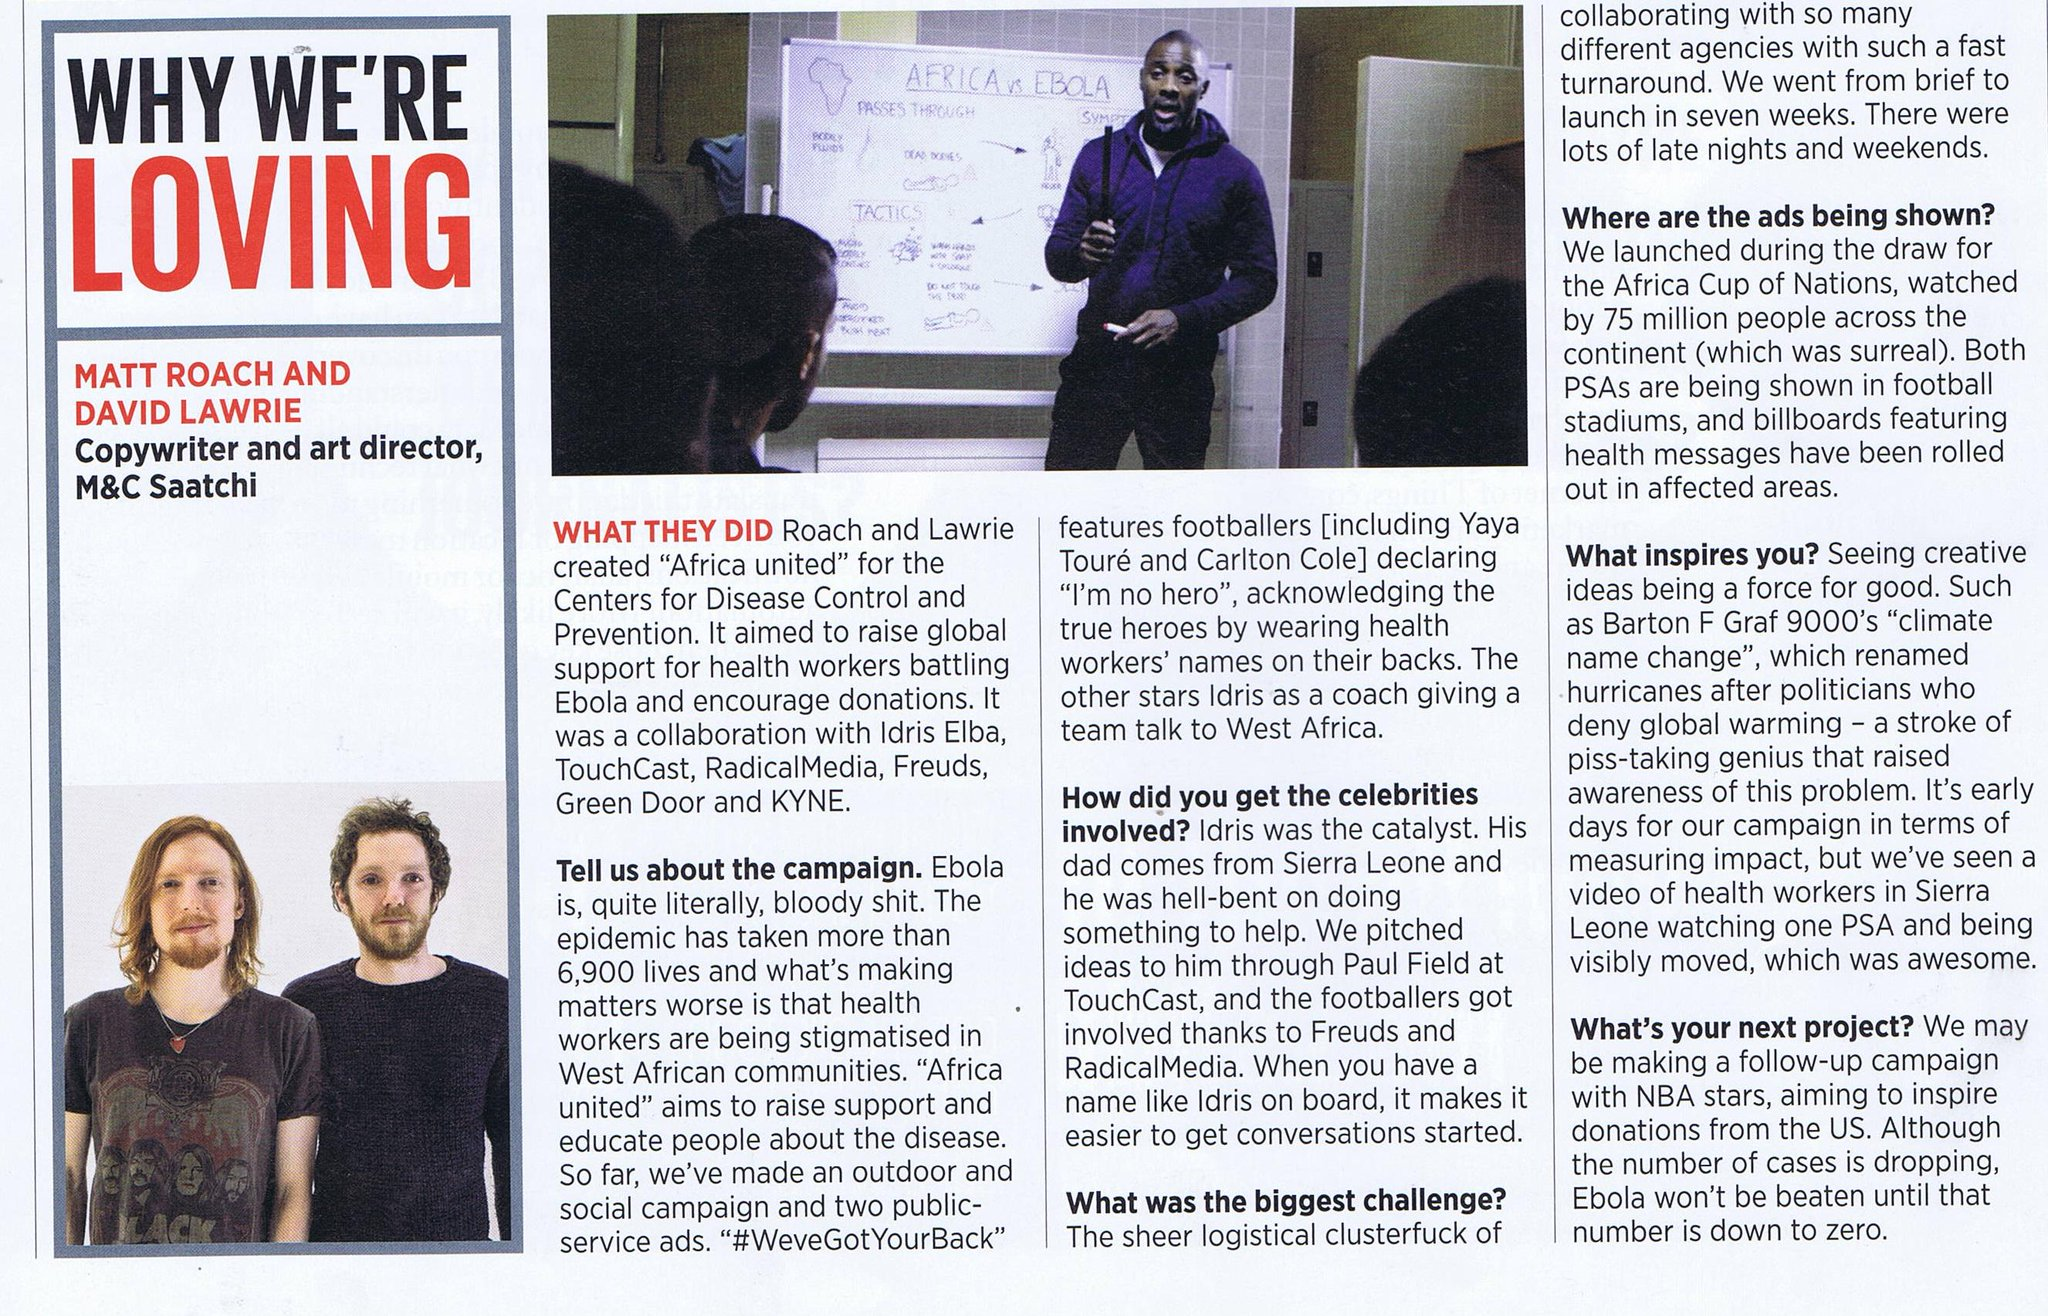 RT @akacreatives: We love you too, @Campaignmag! 'Why We're Loving Matt Roach & David Lawrie' http://t.co/u3JjOcQ2nk http://t.co/eGRwrQFUL1